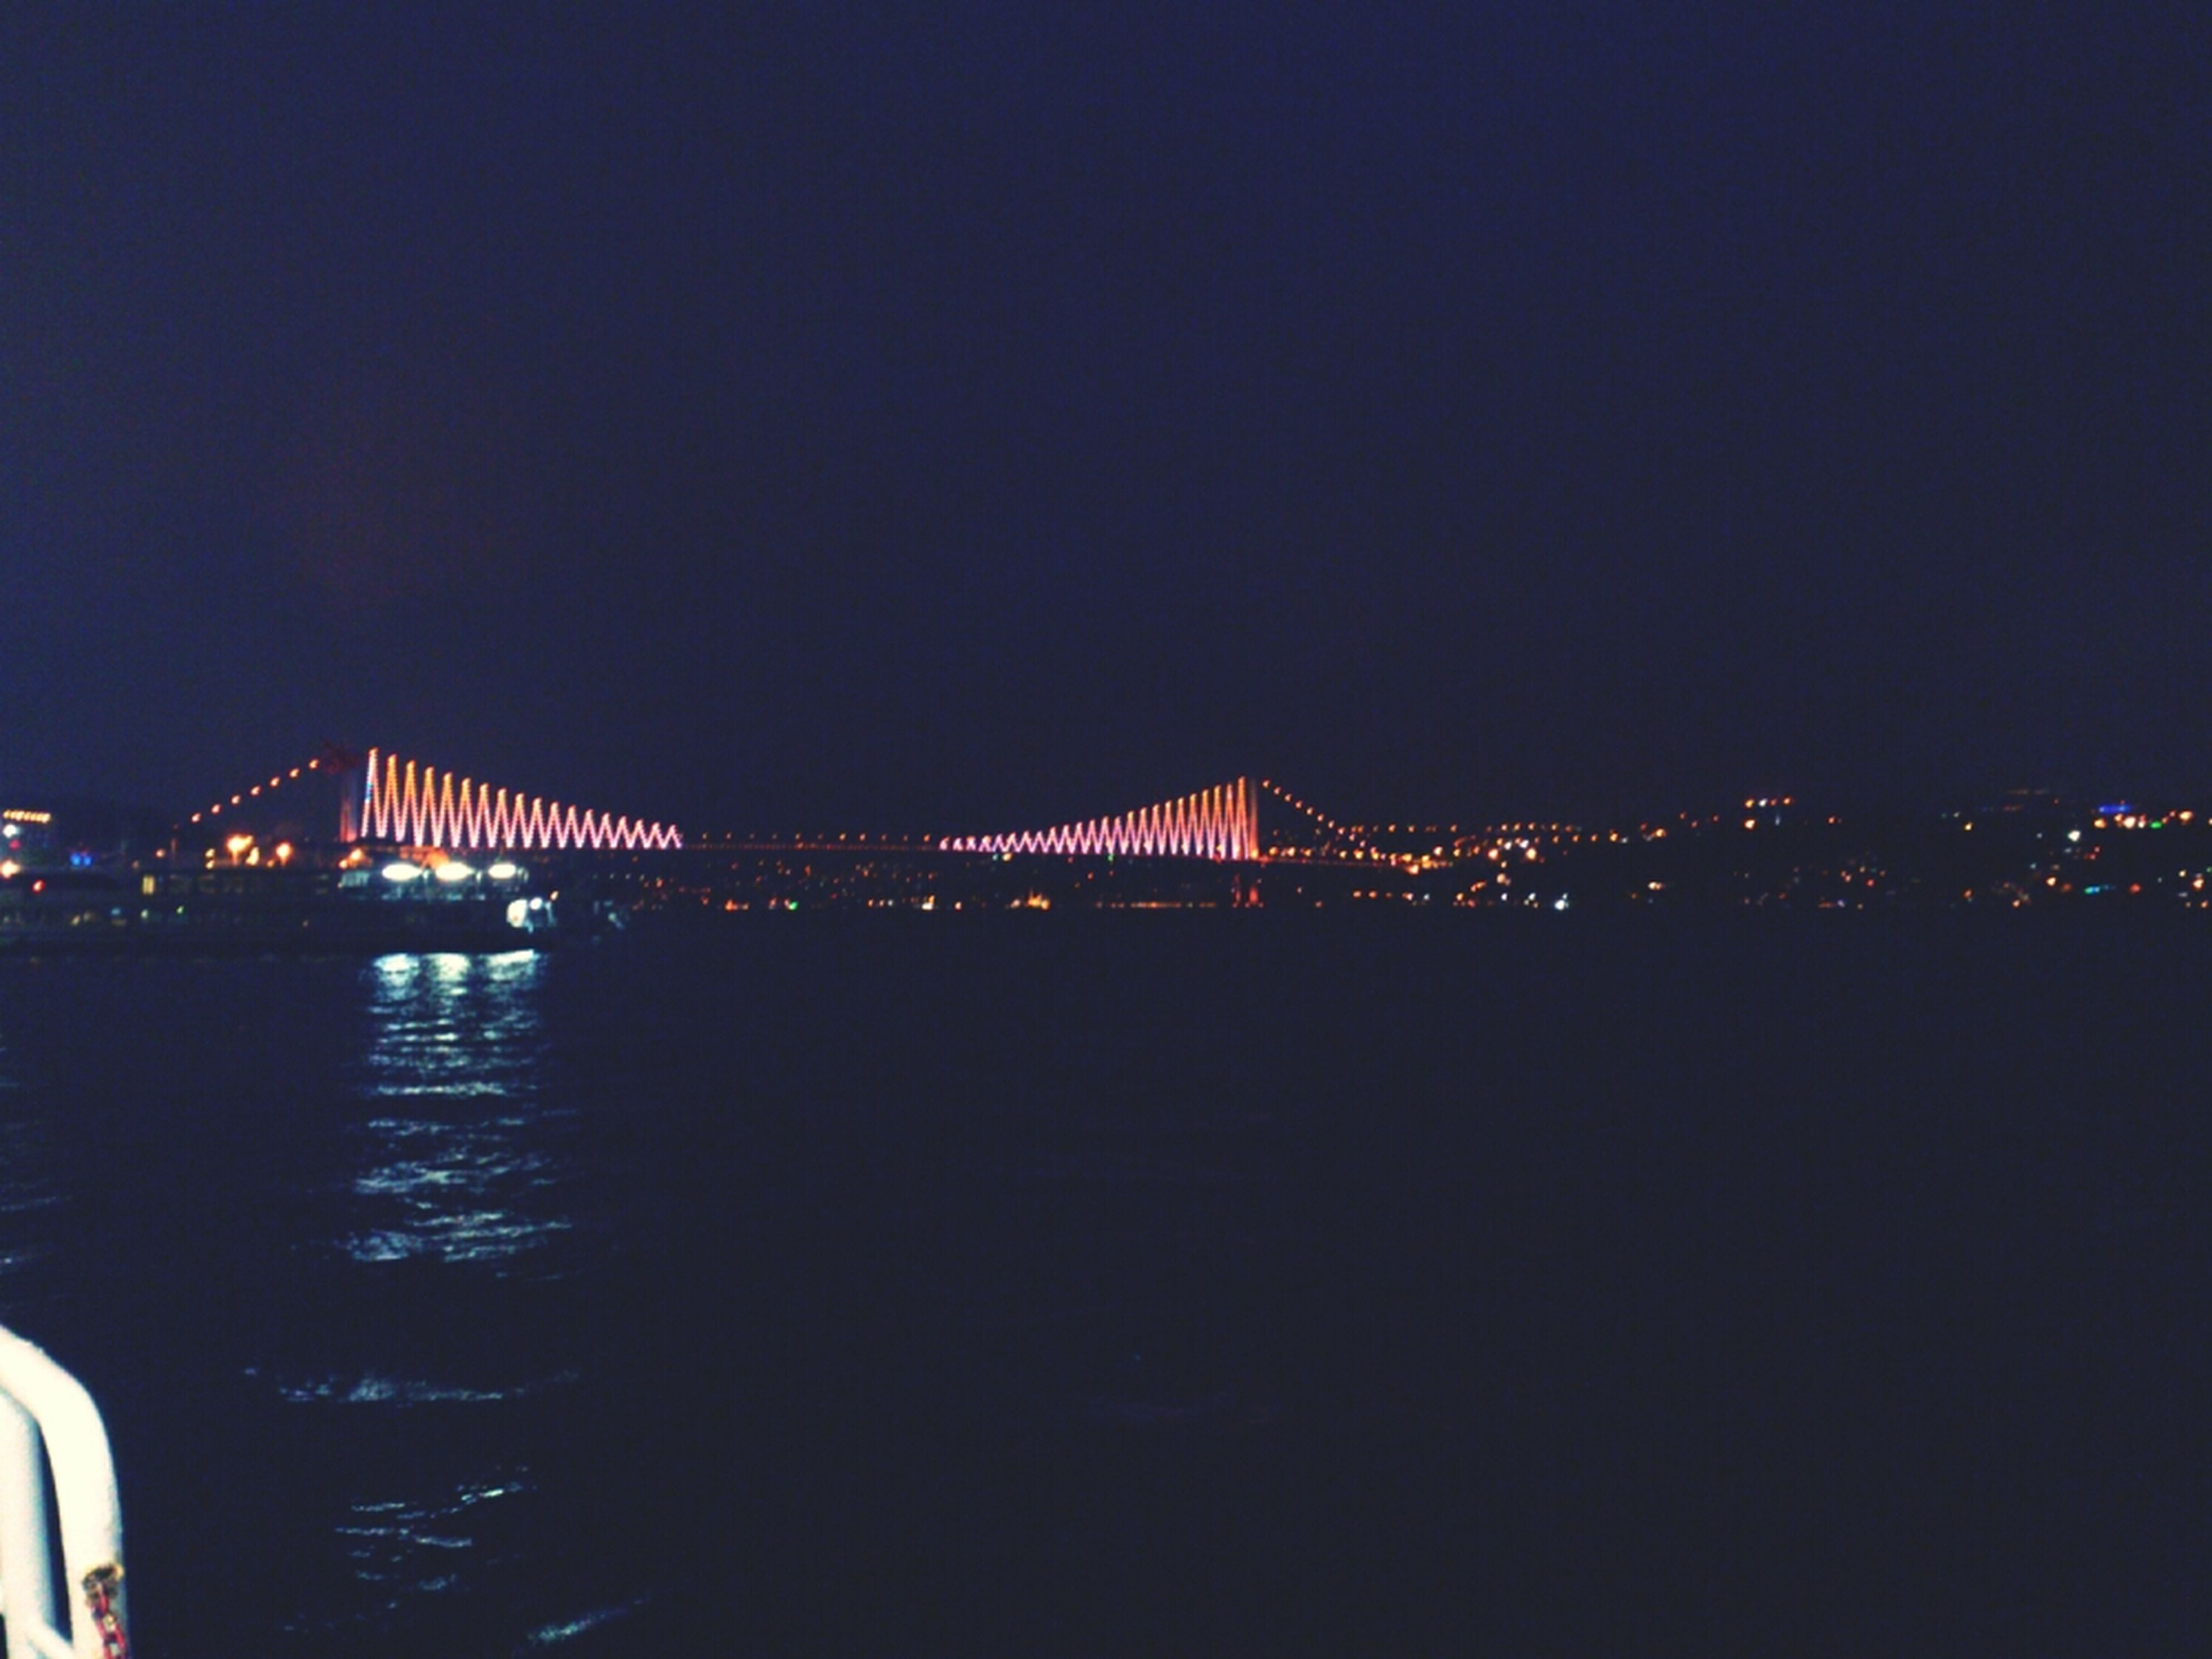 illuminated, night, water, architecture, built structure, bridge - man made structure, copy space, connection, clear sky, river, bridge, reflection, waterfront, city, engineering, dark, building exterior, suspension bridge, sky, travel destinations